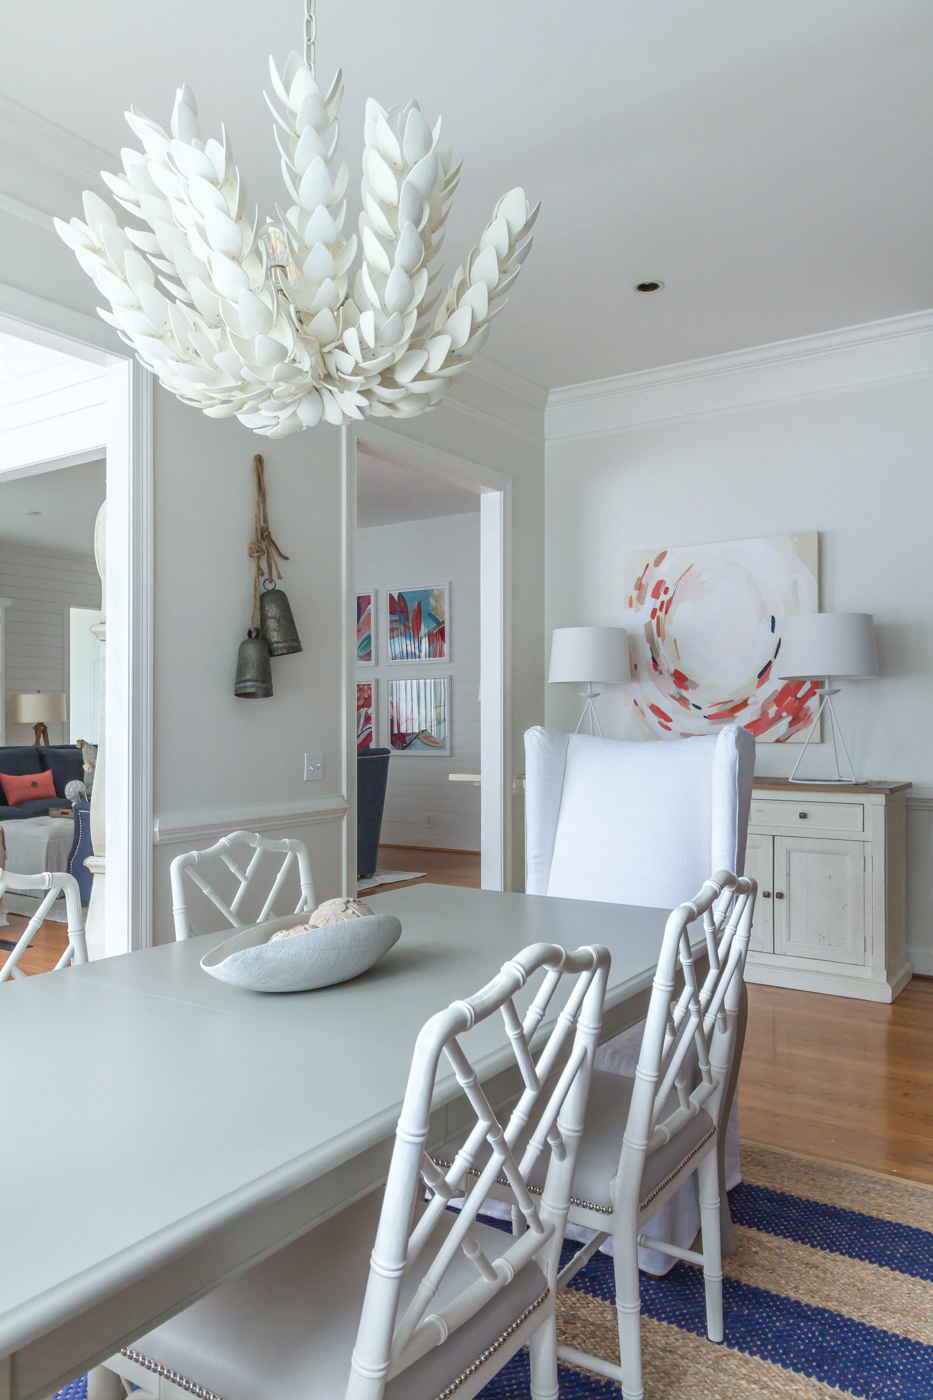 Eclectic Home Tour - statement chandelier and colorful art in a white dining room #diningroom #lighting #diningroomdecor